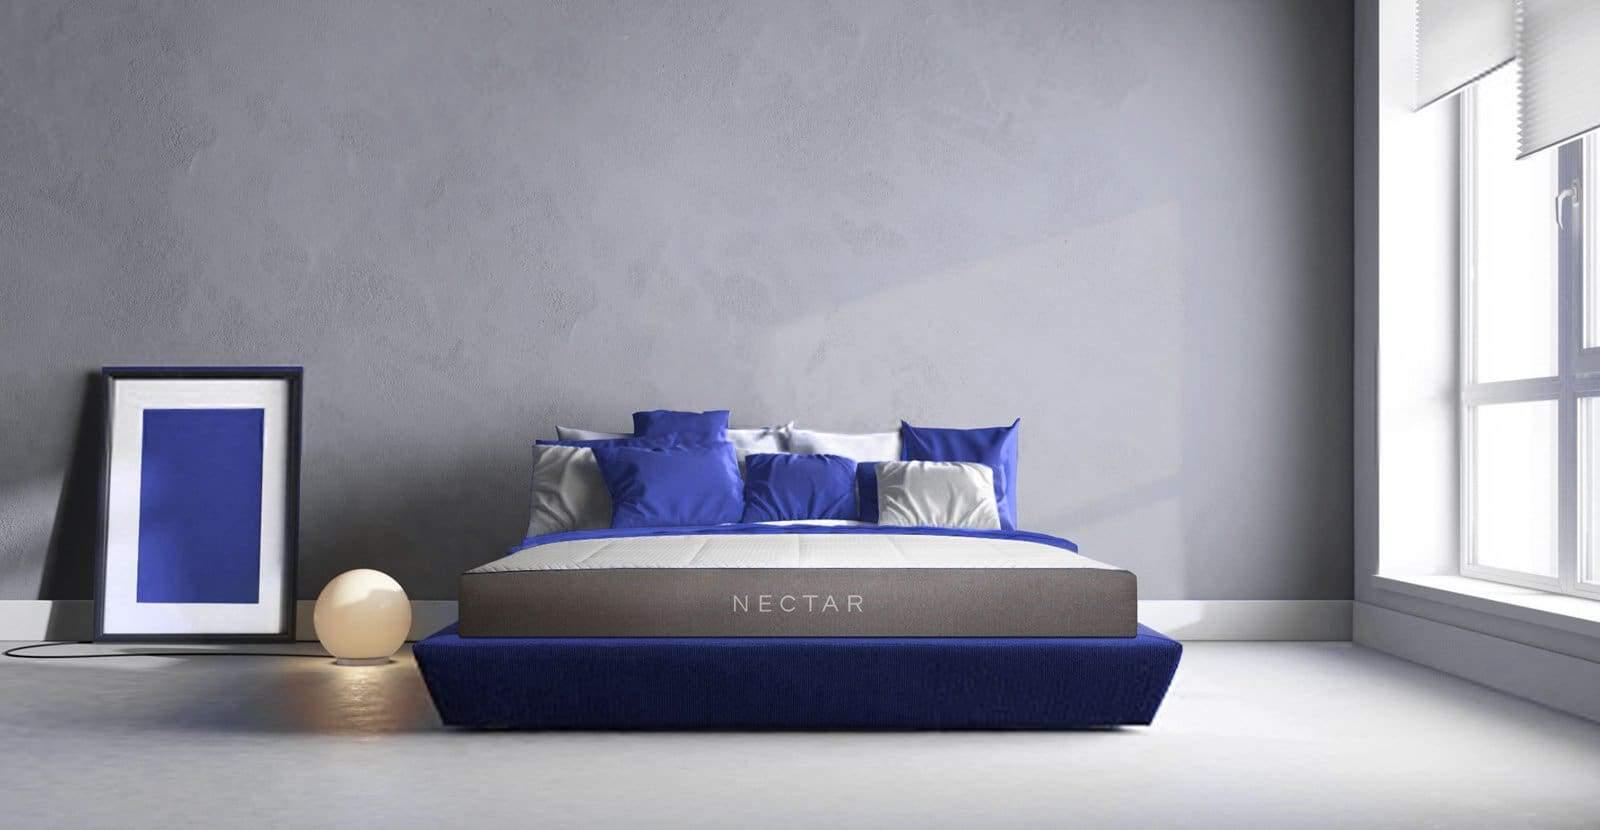 Nectar Mattress Review Extra 125 Off Limited Time With